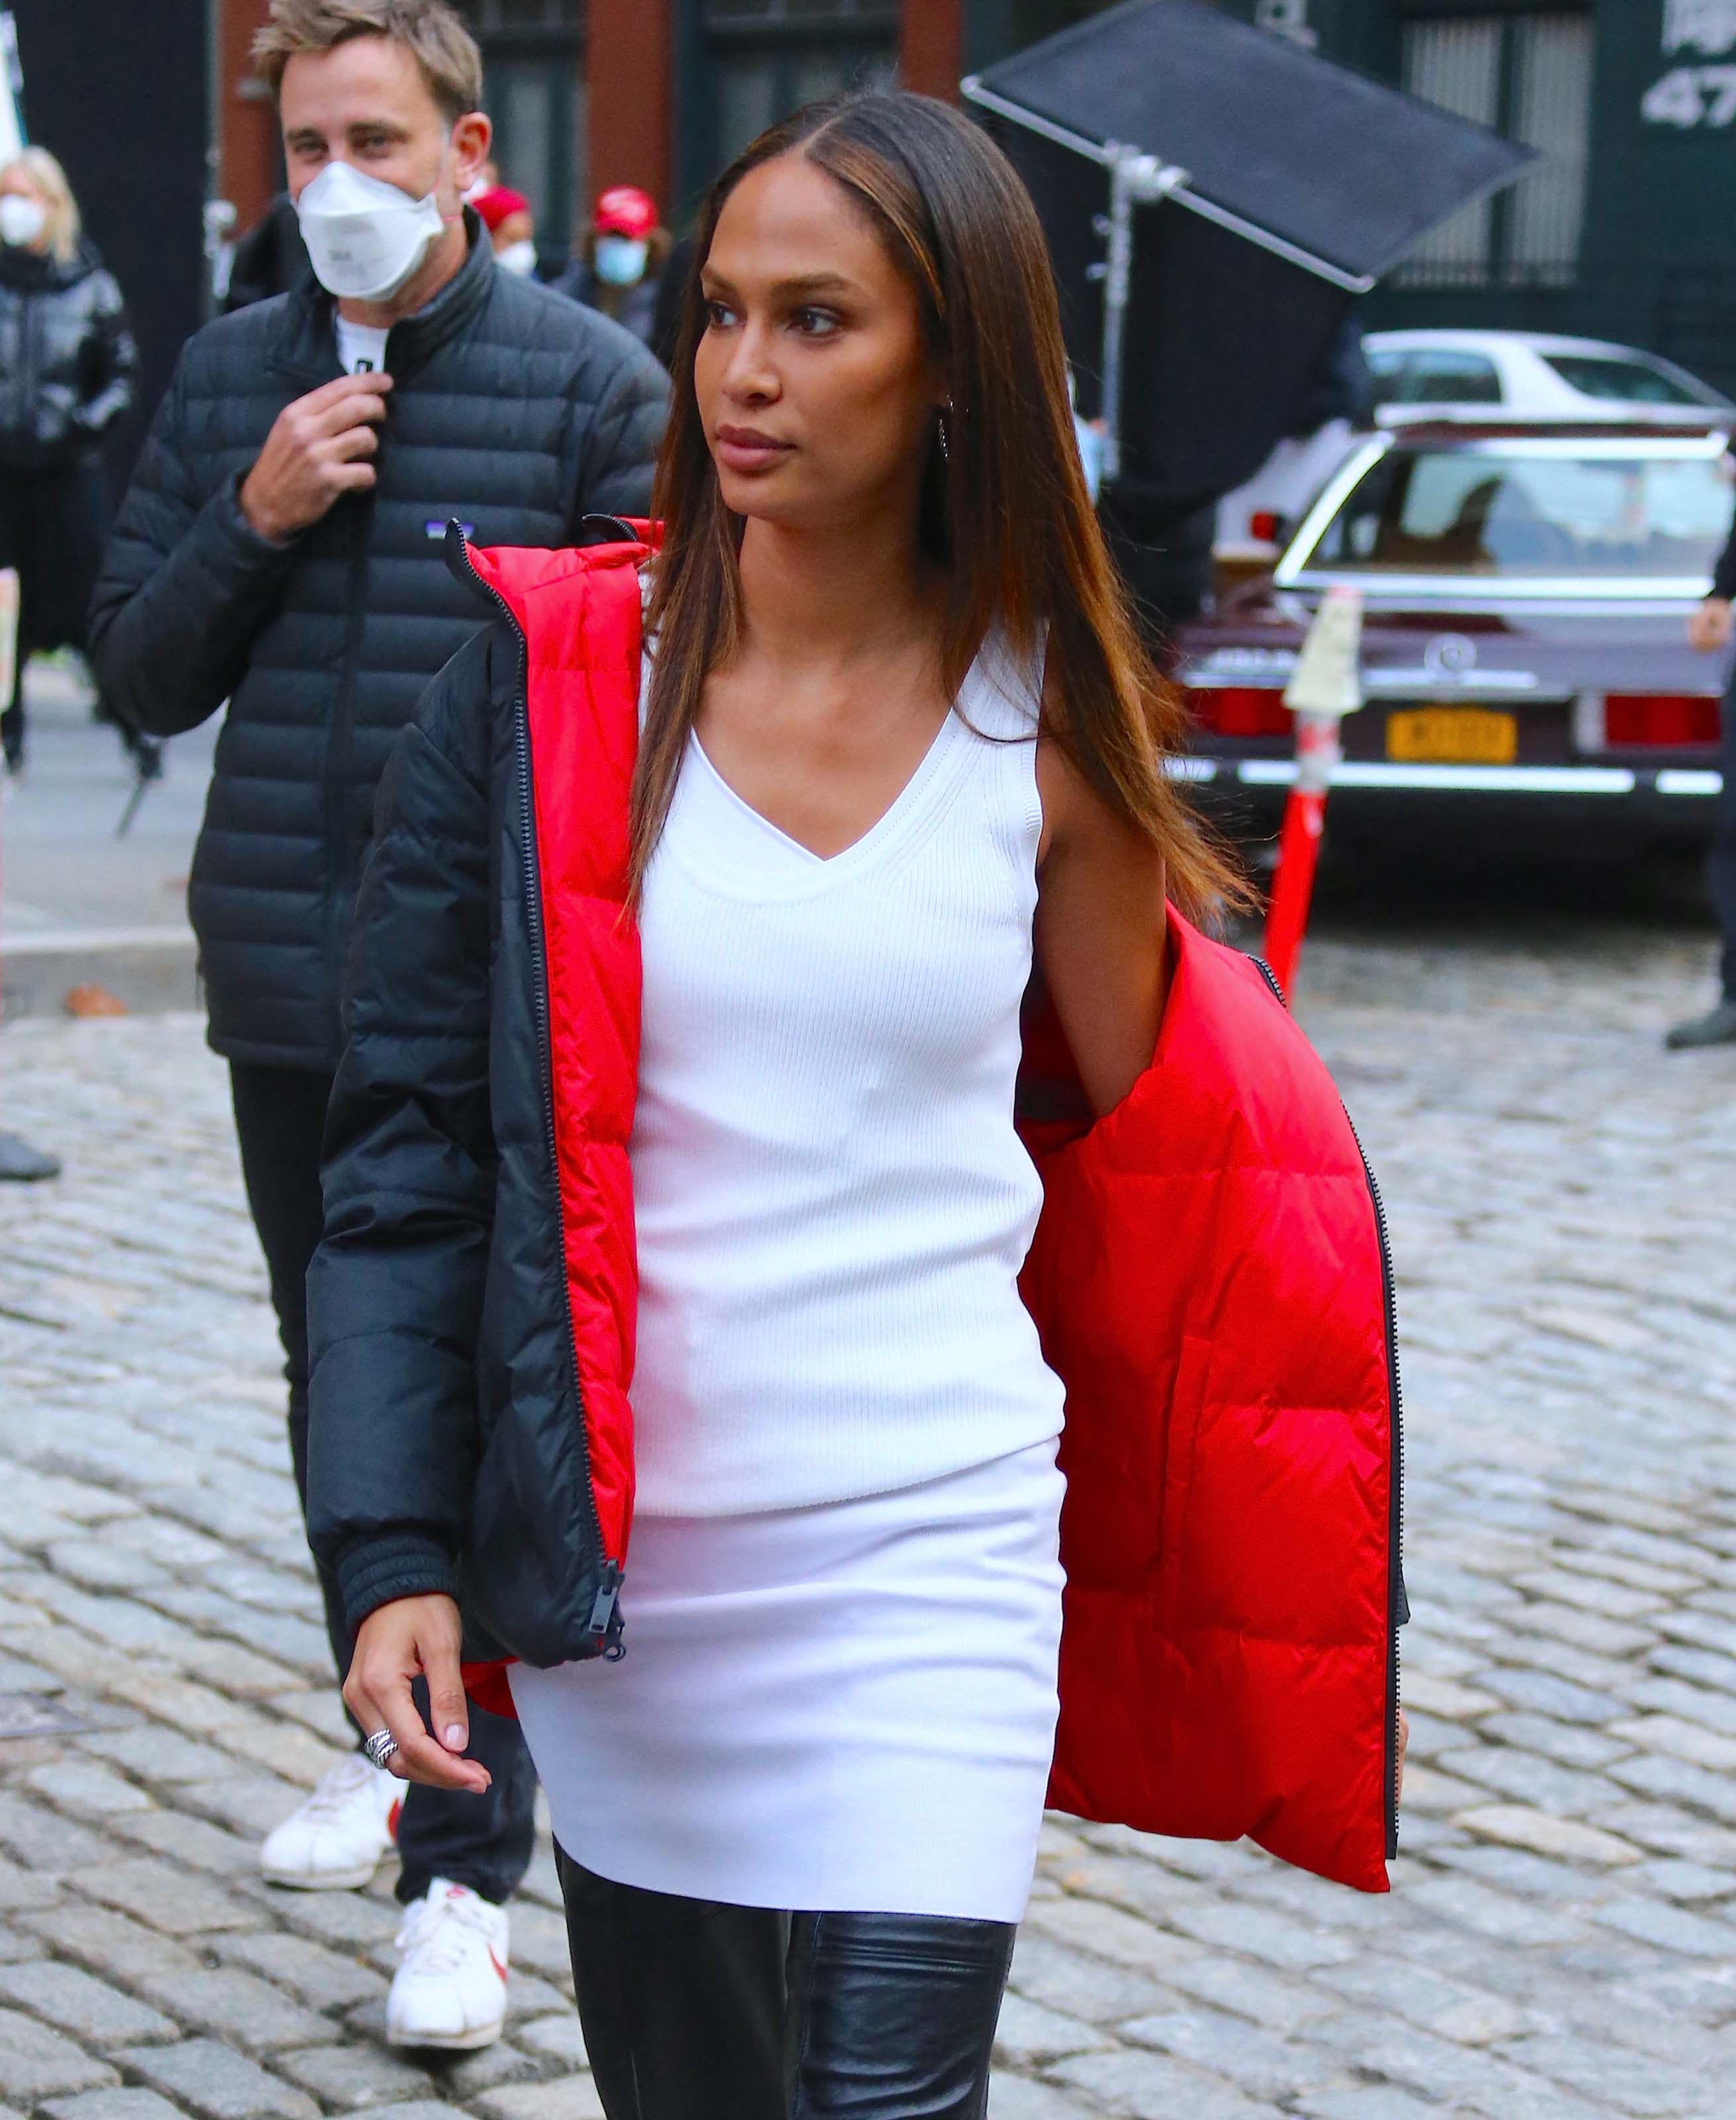 Joan Smalls doing a photoshoot in Tribeca, New York City